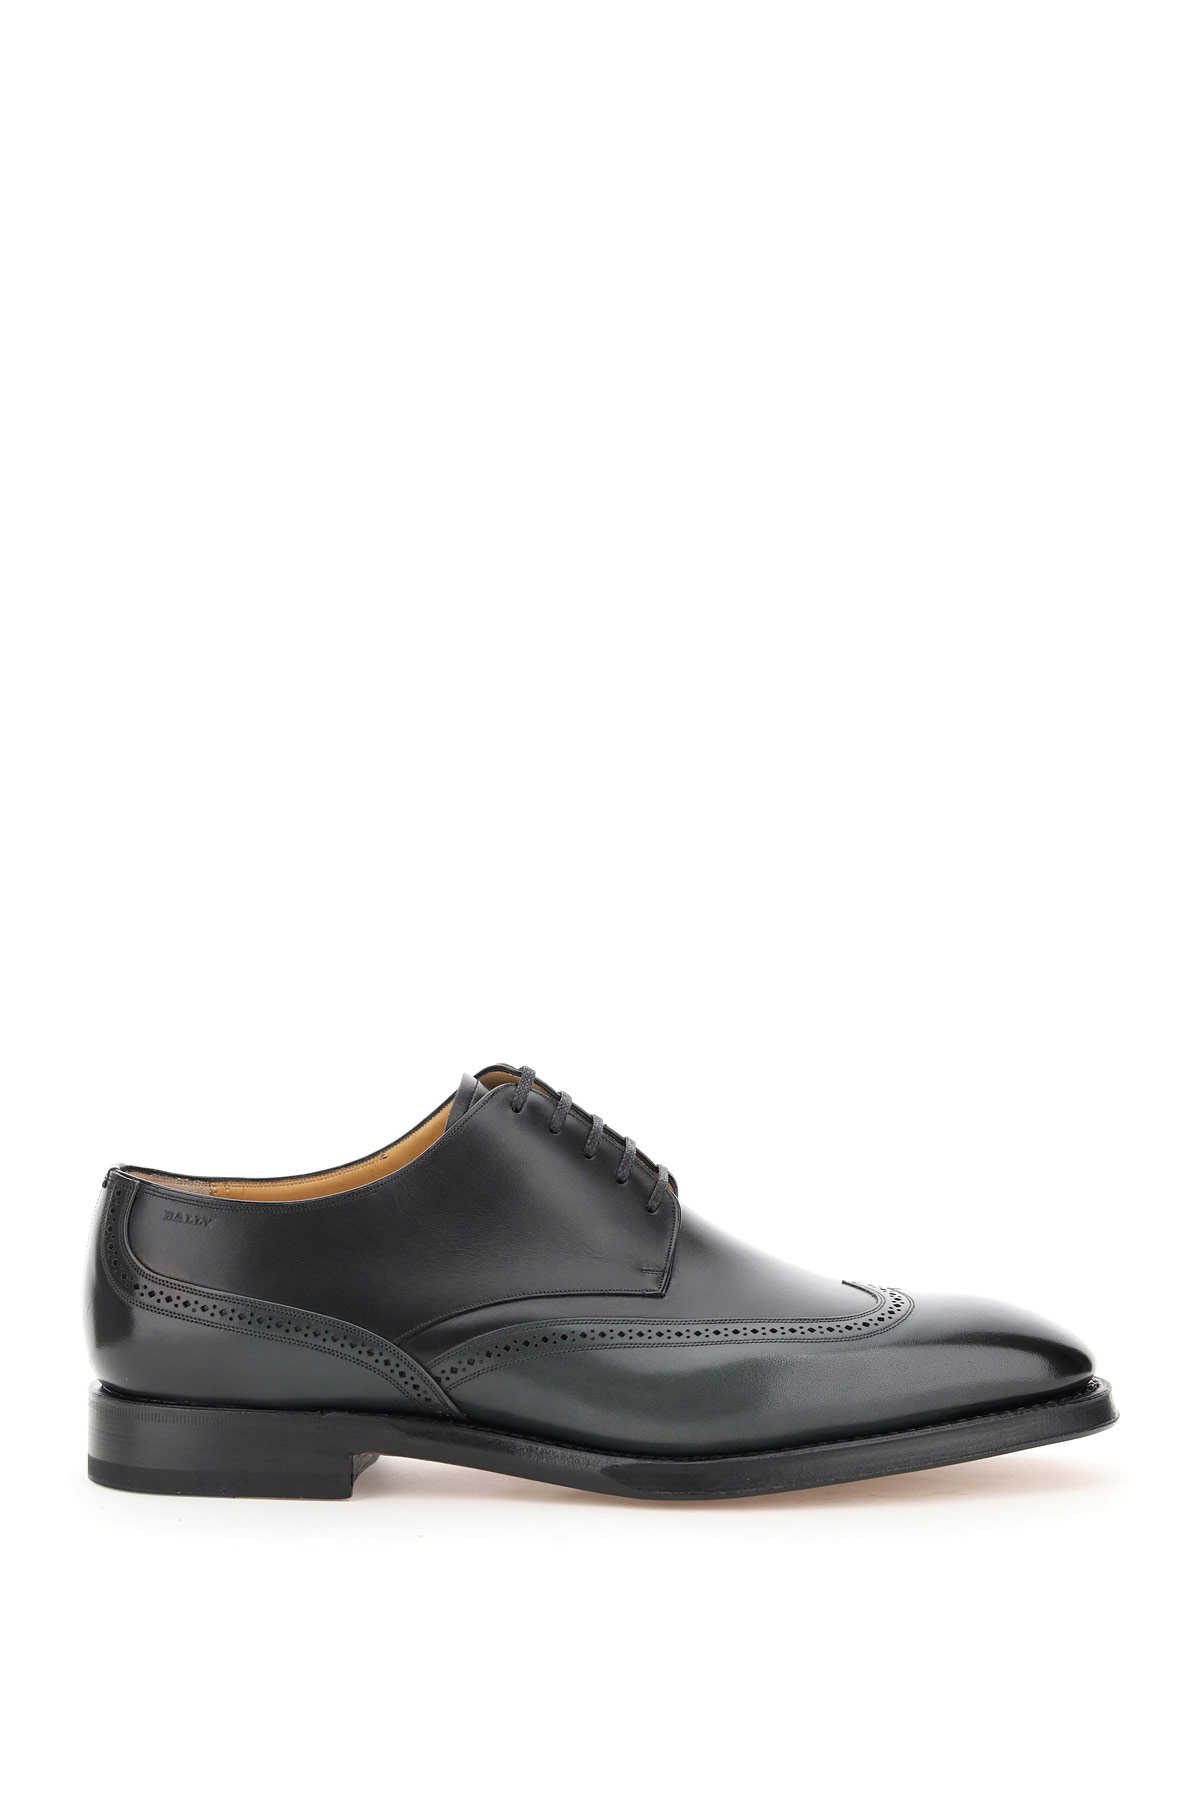 BALLY TIGHTEN SCONNY 5 Grey, Black Leather